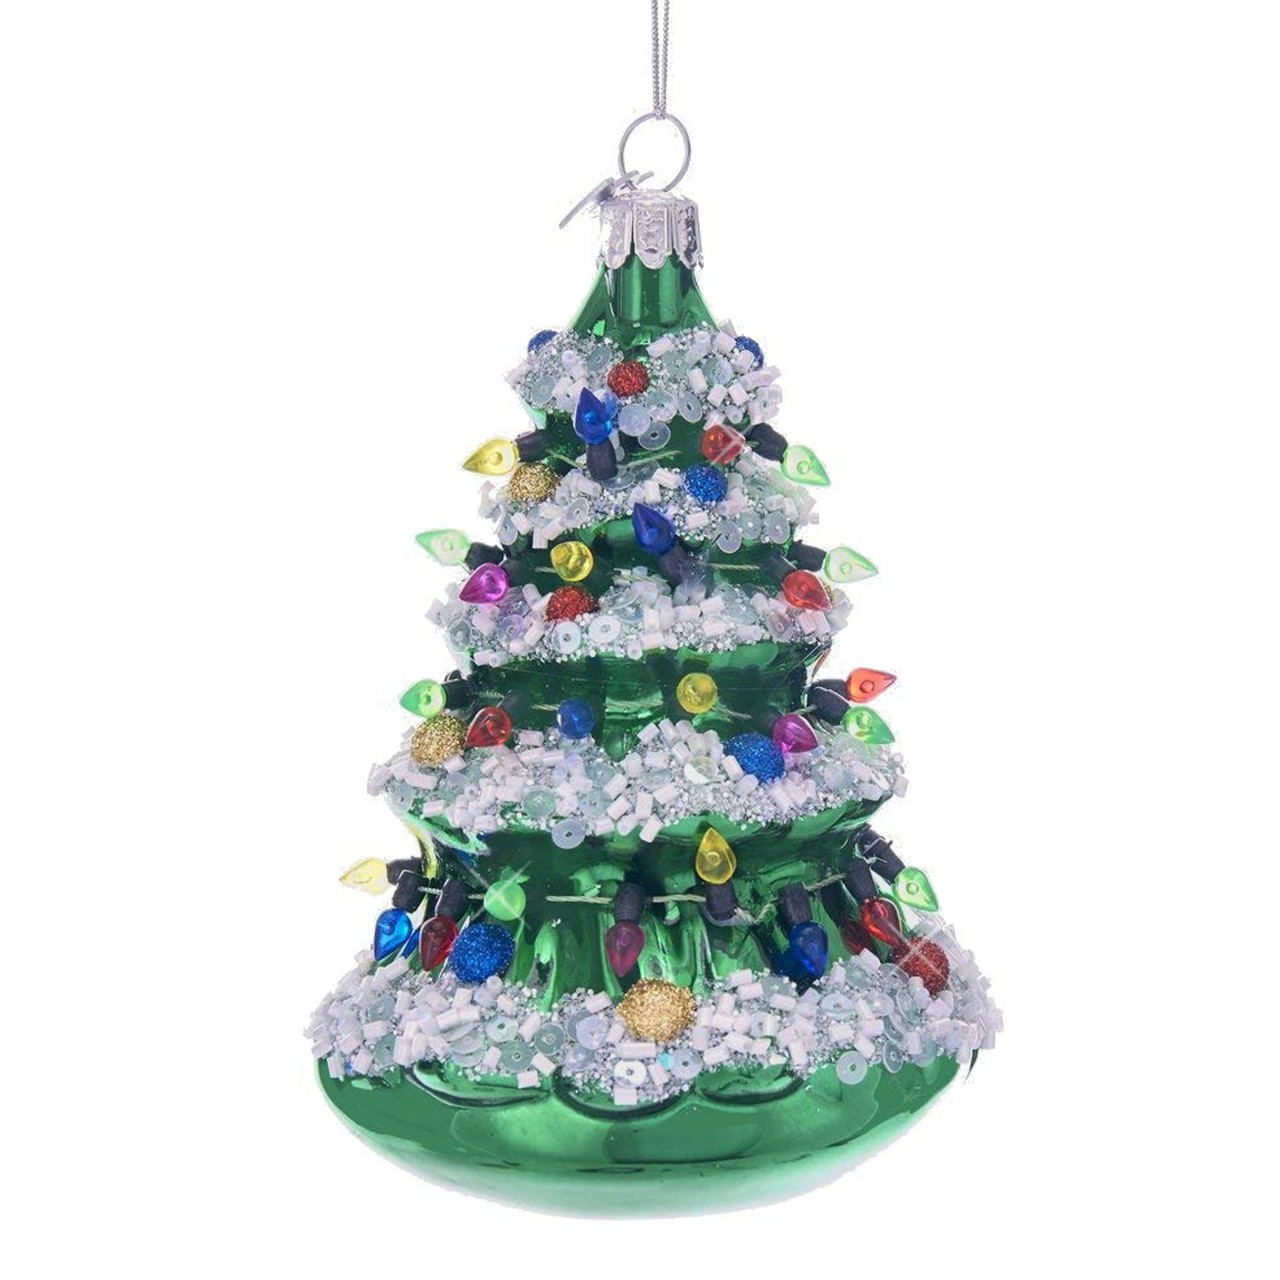 Old Fashioned Christmas Tree Ornament 5 Inches